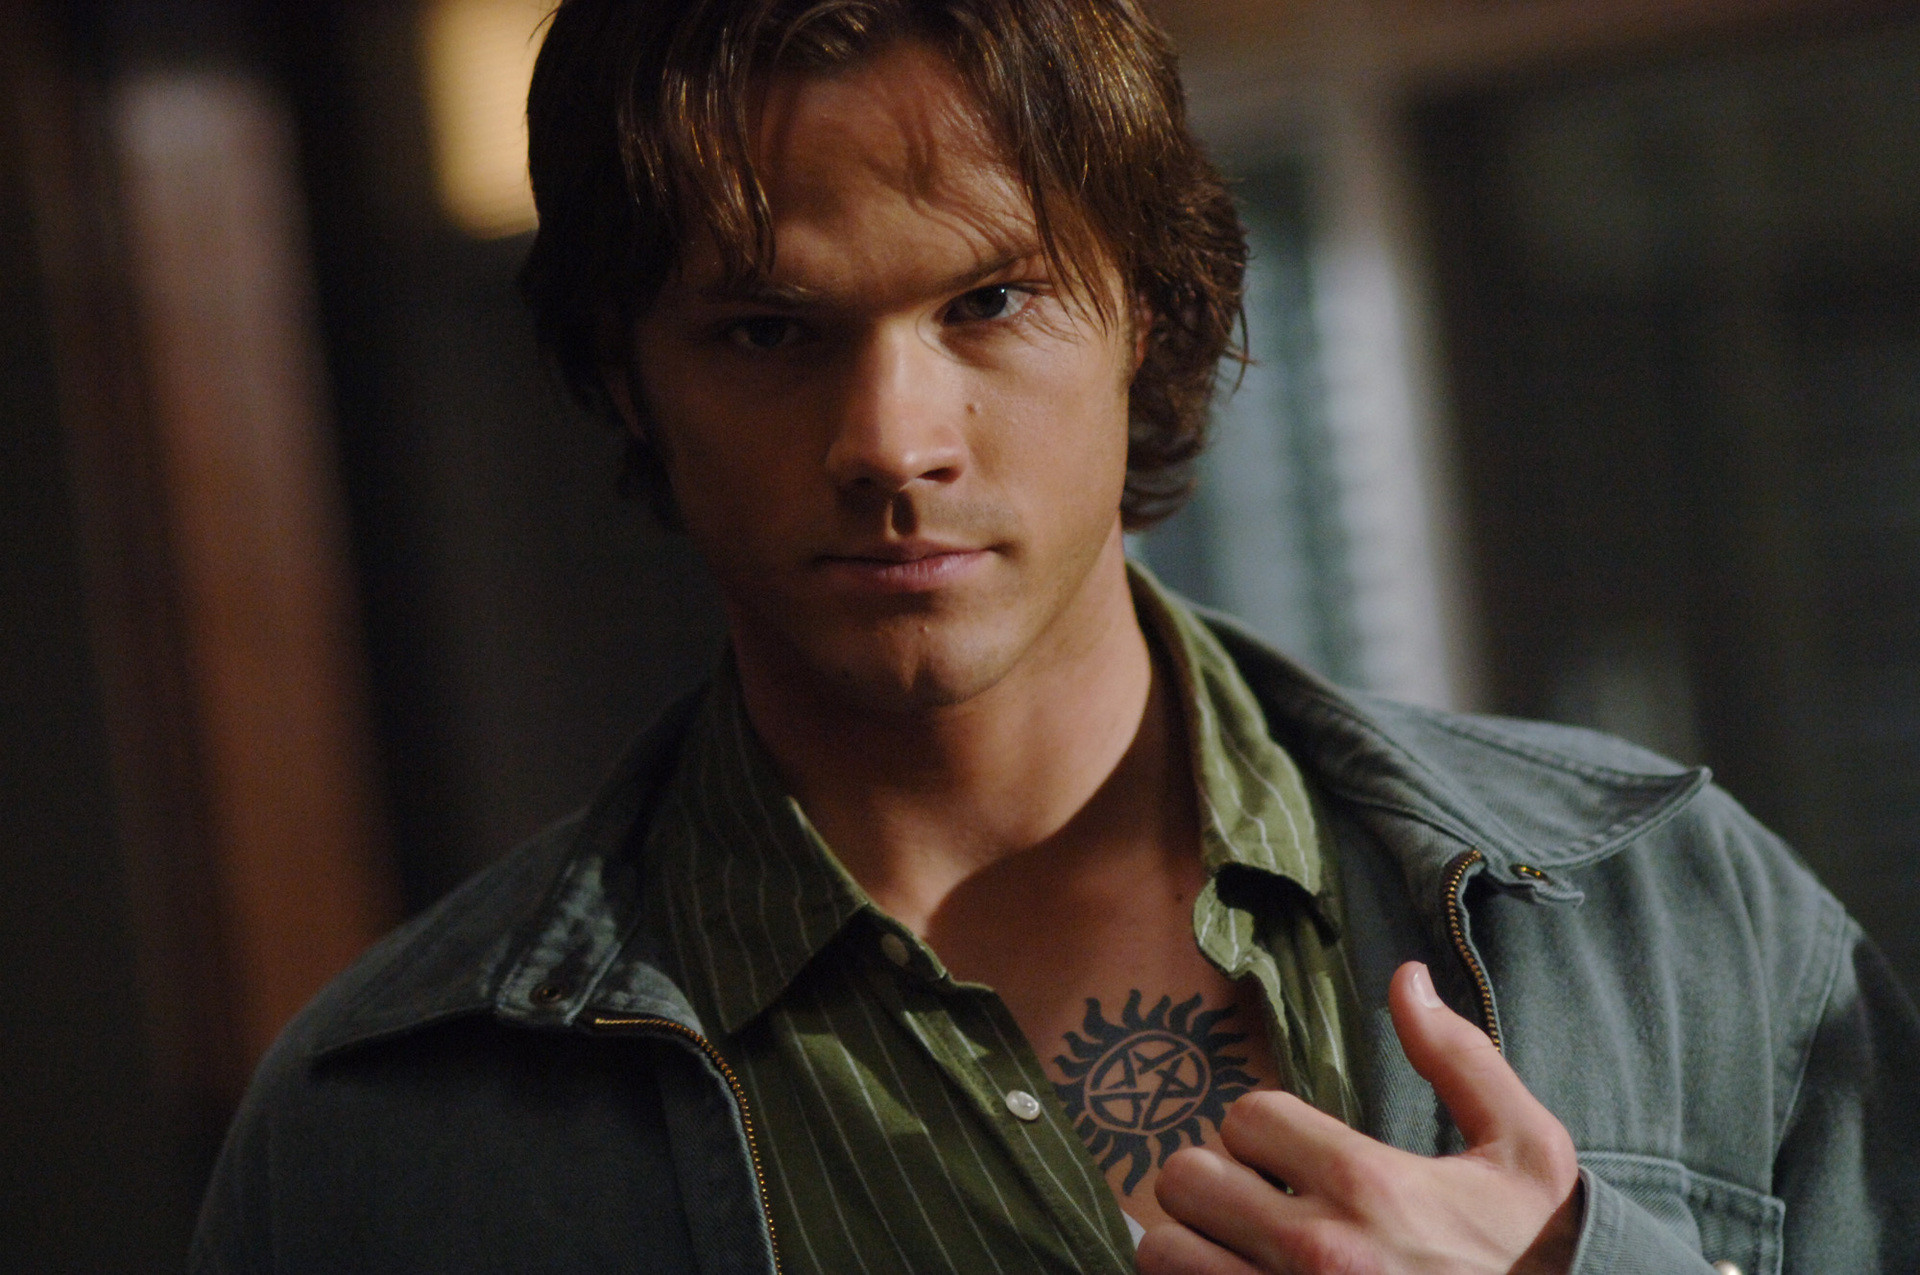 Supernatural Fans images Spn HD wallpaper and background photos